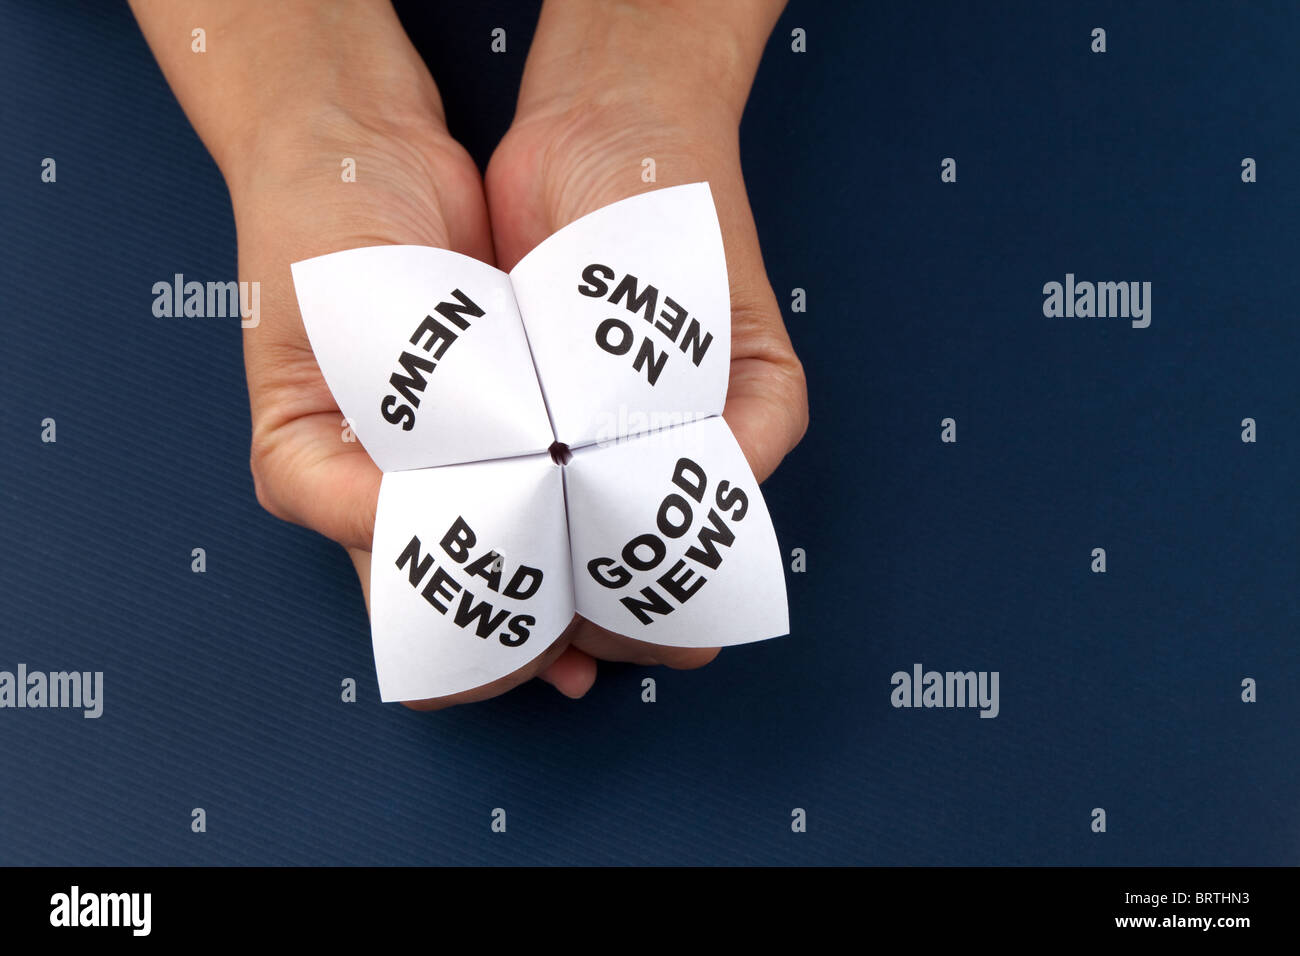 Paper Fortune Teller, Good News; Bad News; No News; News, concept of business decision - Stock Image